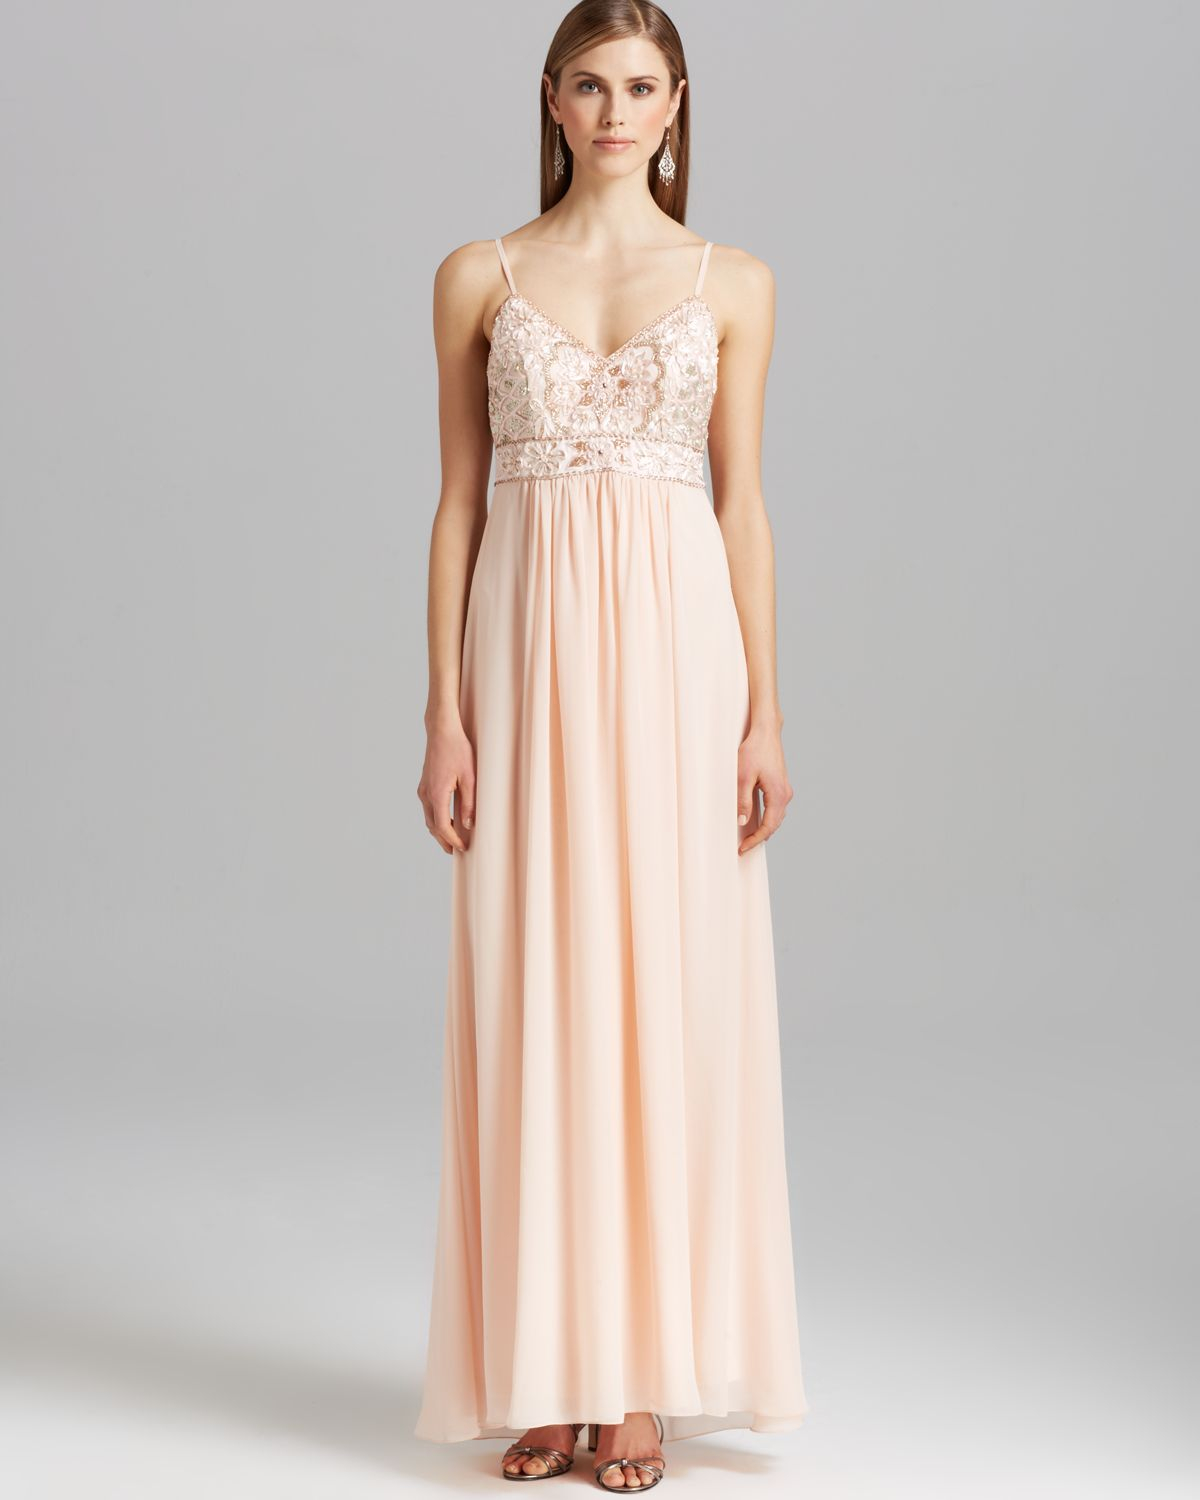 Sue wong Gown - Chiffon Skirt in Pink | Lyst